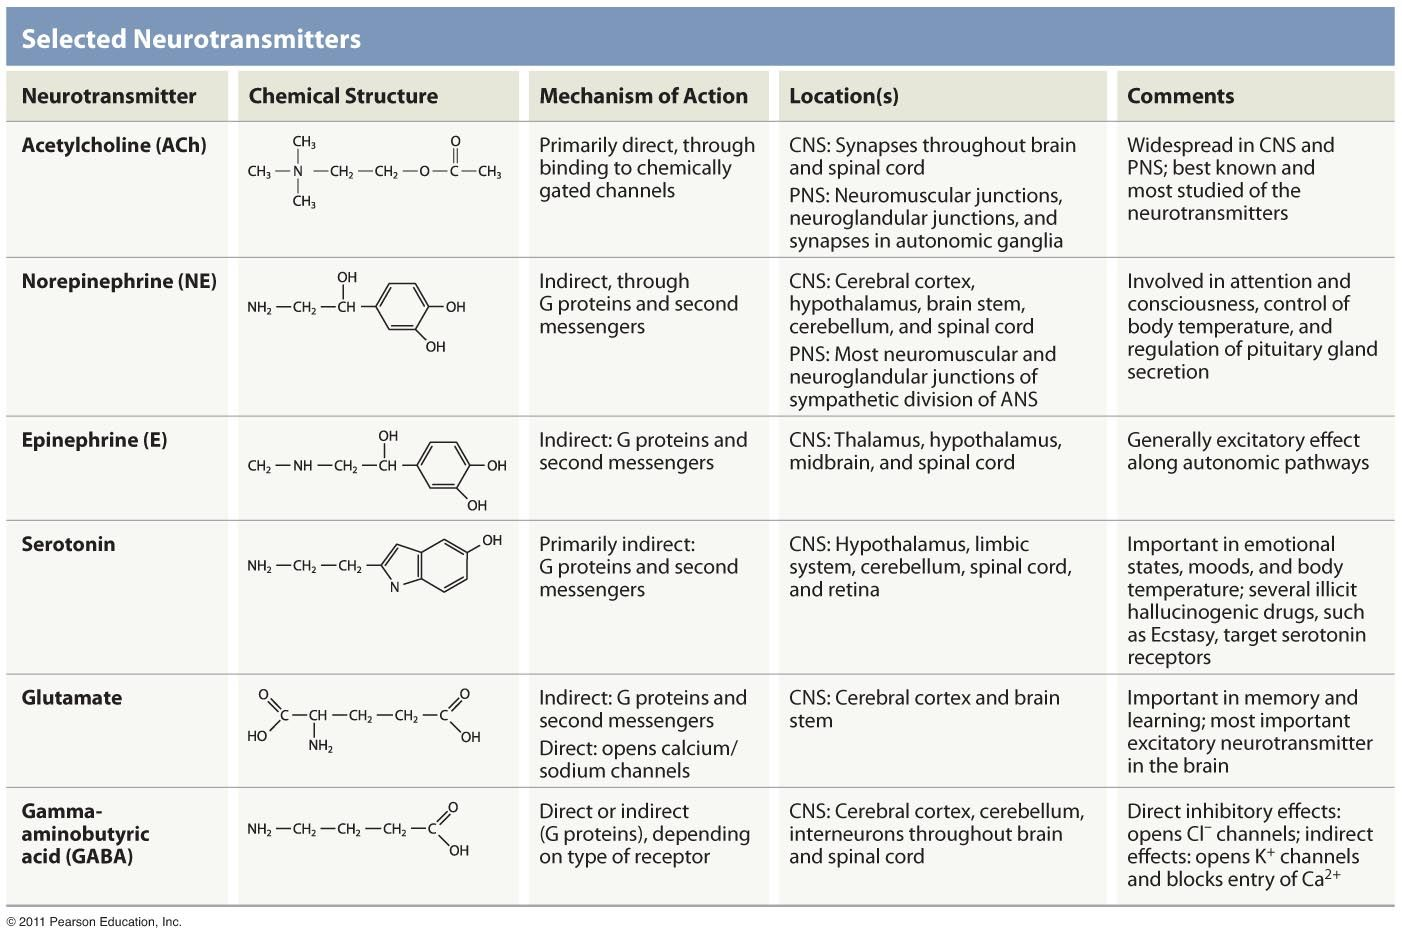 neurotransmitters | chemically gated channels - respond to